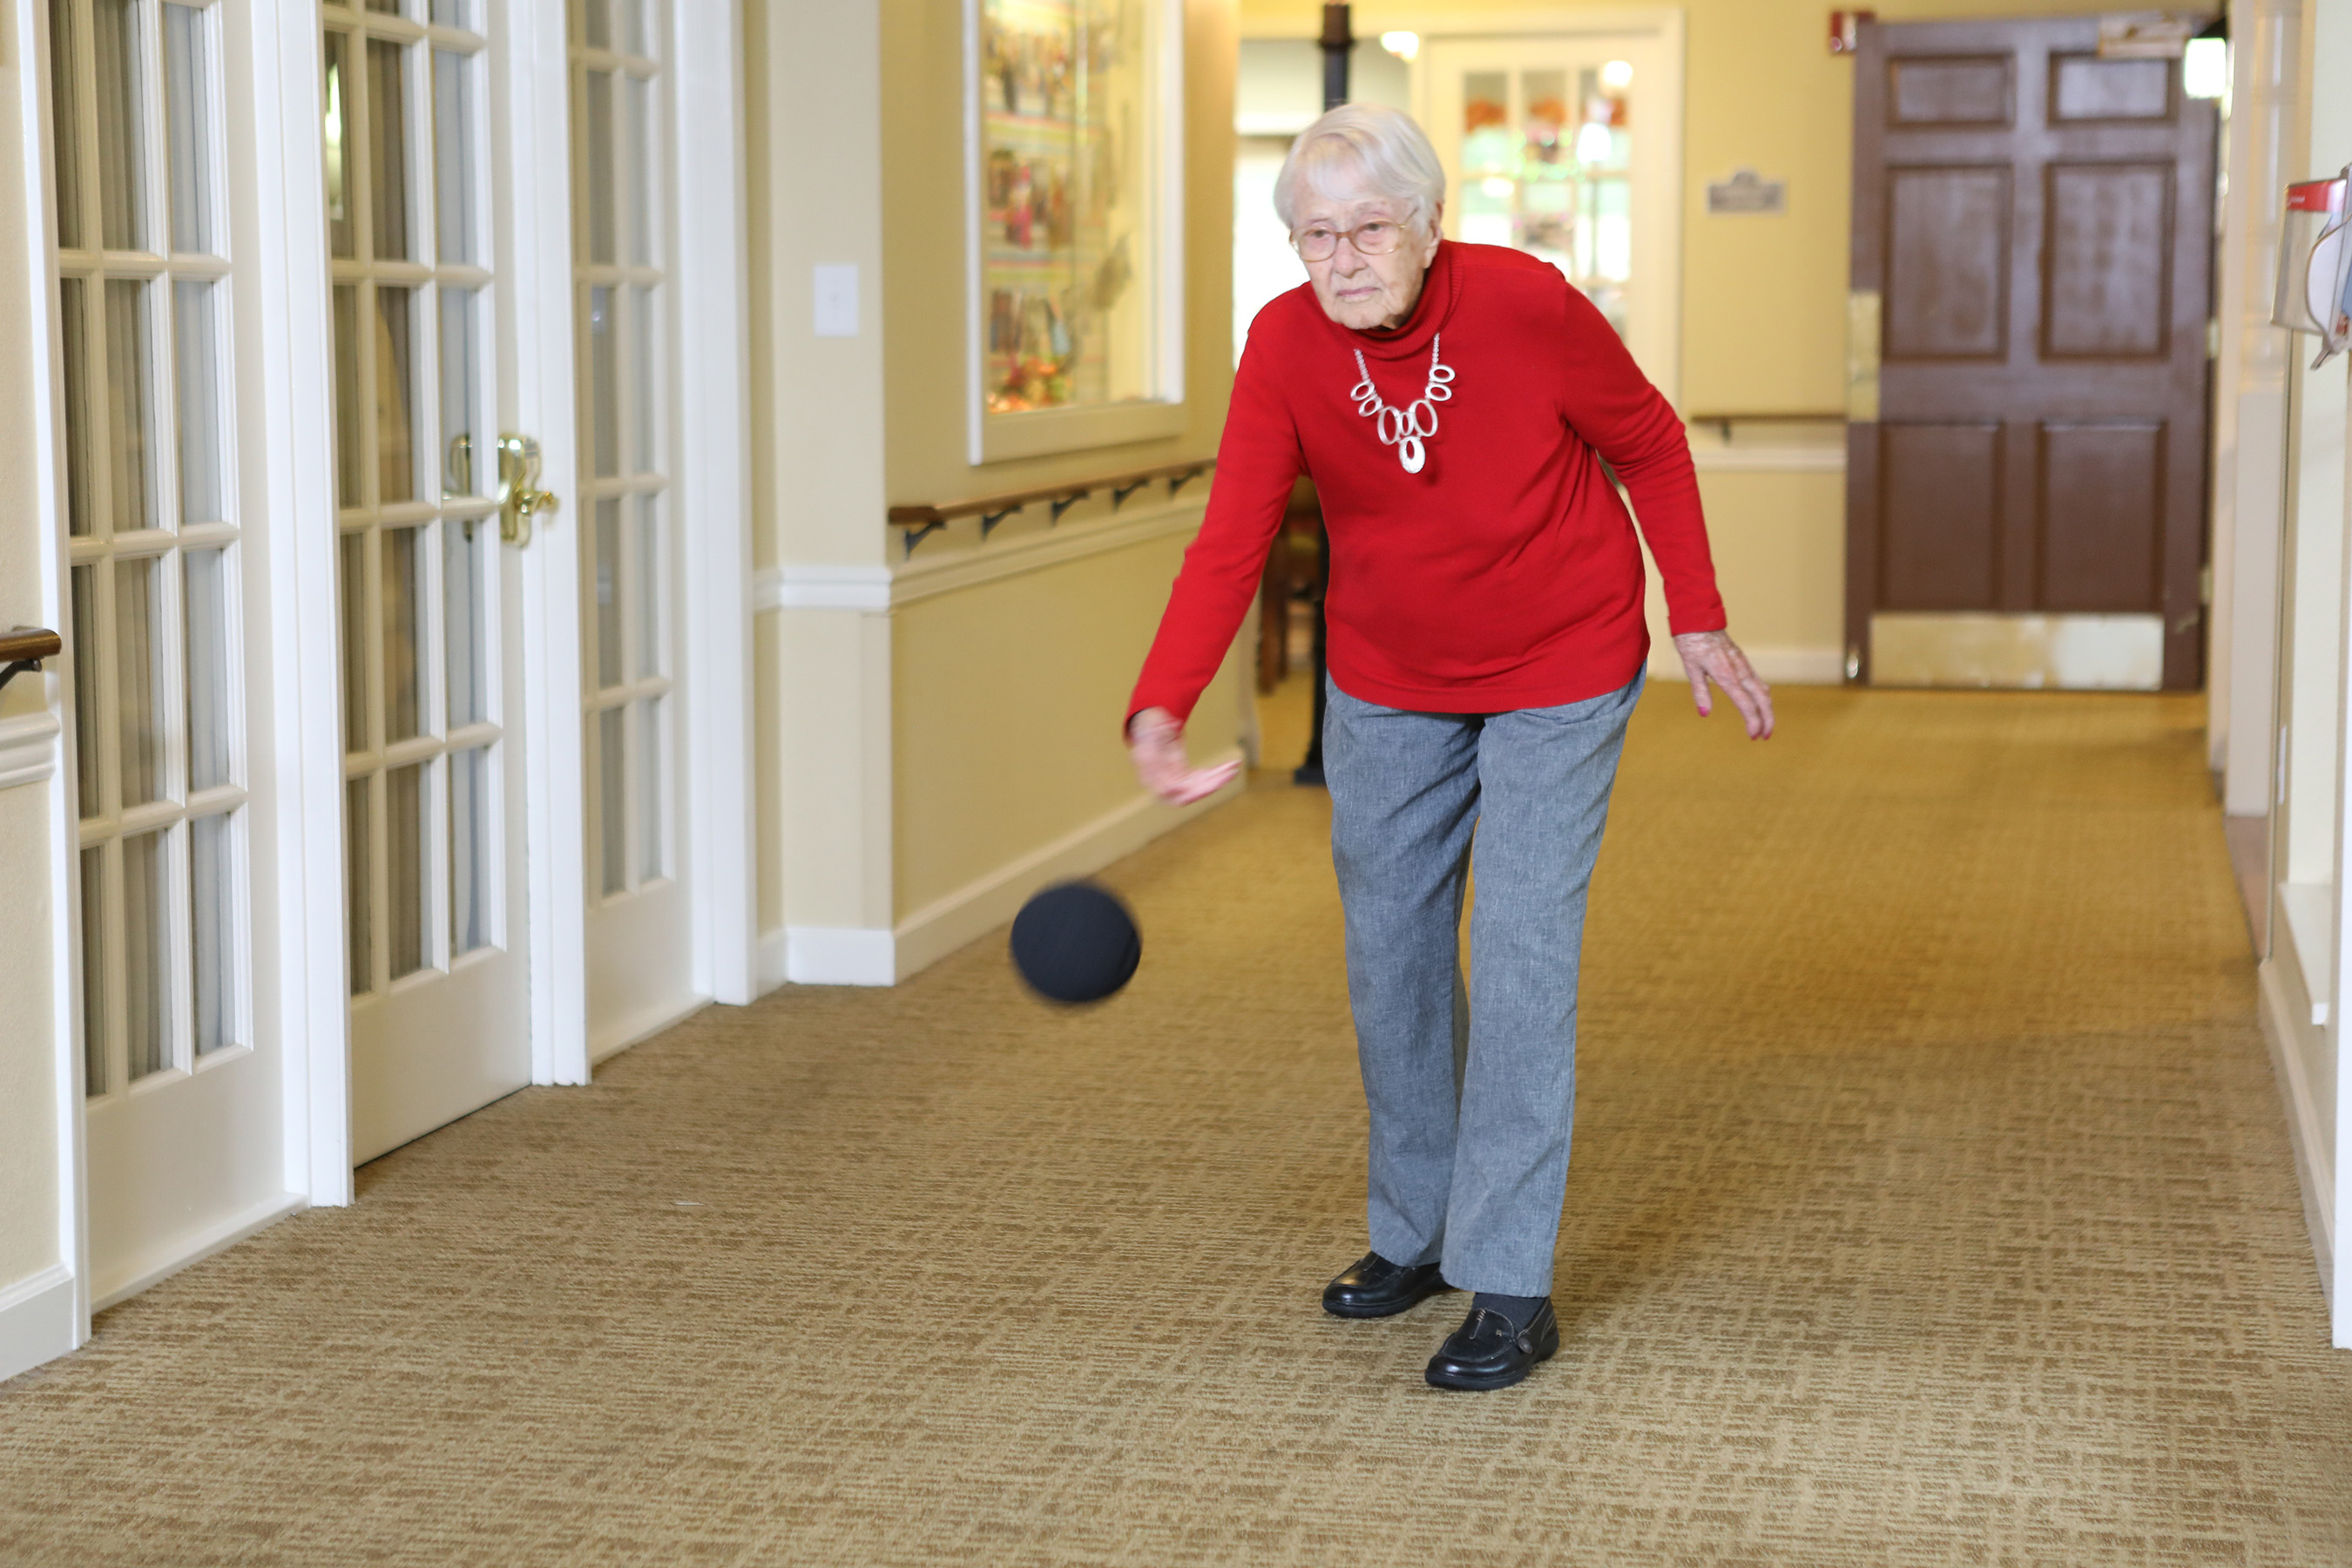 Dorothy is an avid bowler. She bowled with an 11 pound ball until she was 101 years old. Now she enjoys bowling at her Brookdale community.